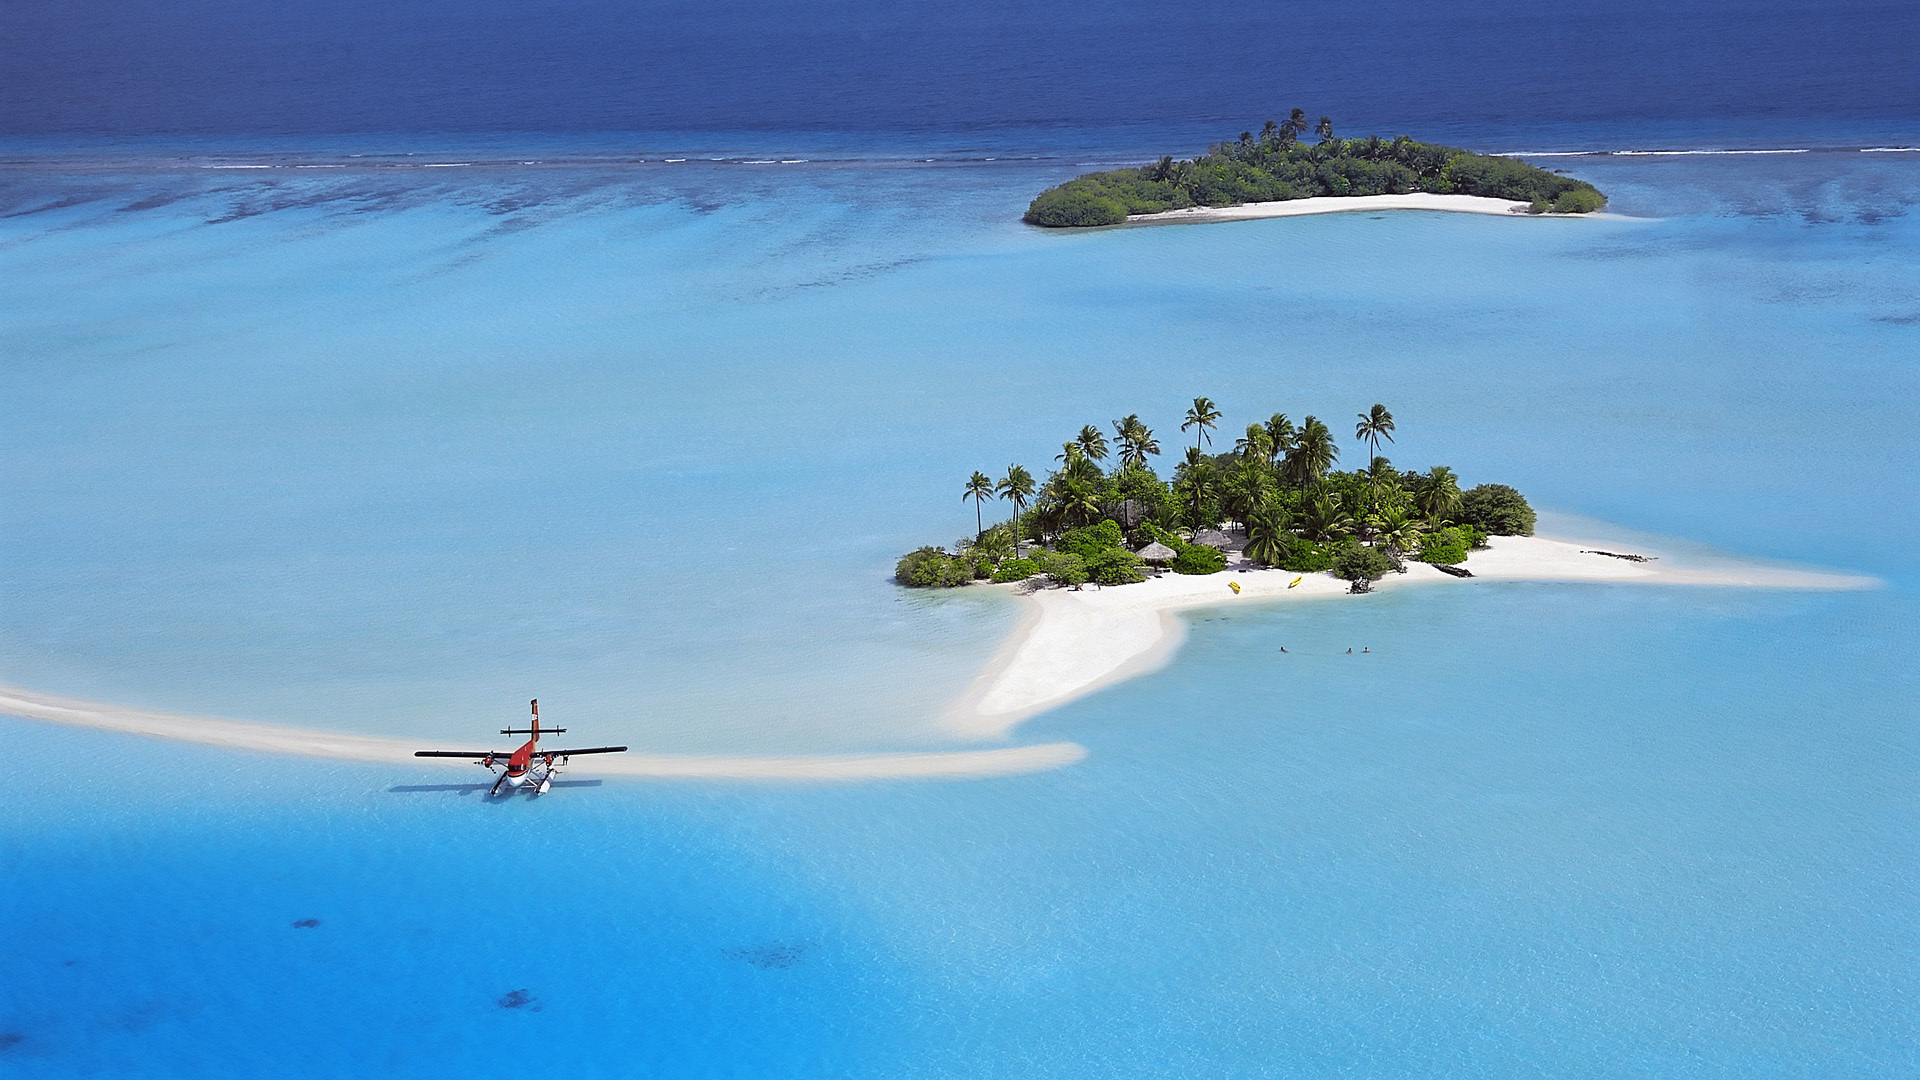 Earth - Island  - Maldives - Ocean - Paradise - Water - Aircraft - Airplane - Vacation Wallpaper